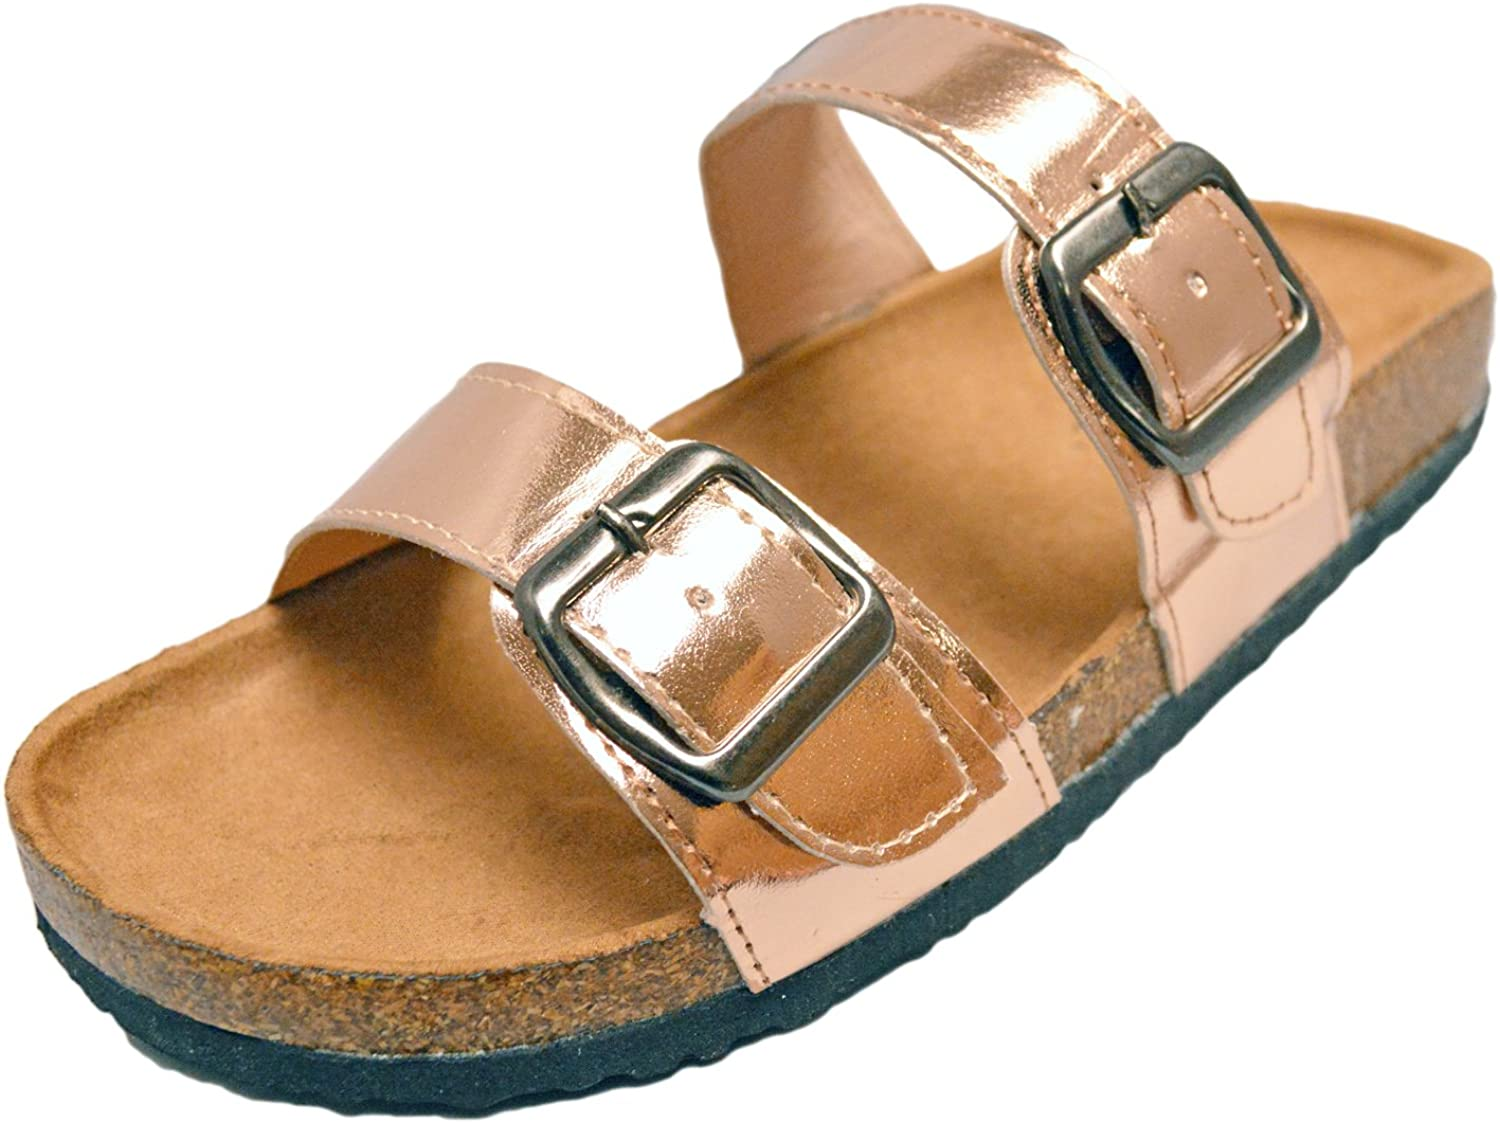 Orly shoes Women's Two Buckle Strap Vegan Suede Footbed Slide Sandal